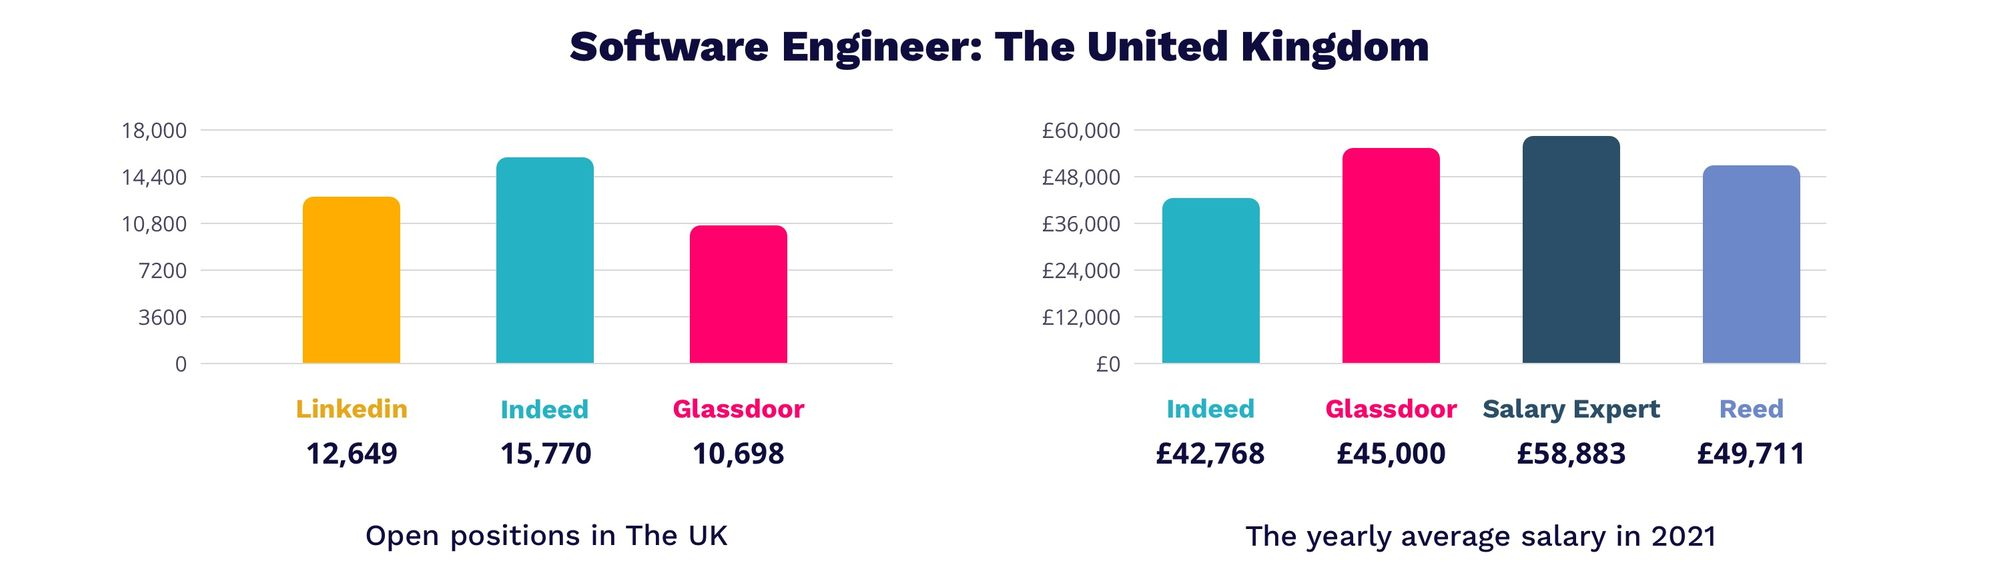 Software Engineer salary in UK 2021   MagicHire.co